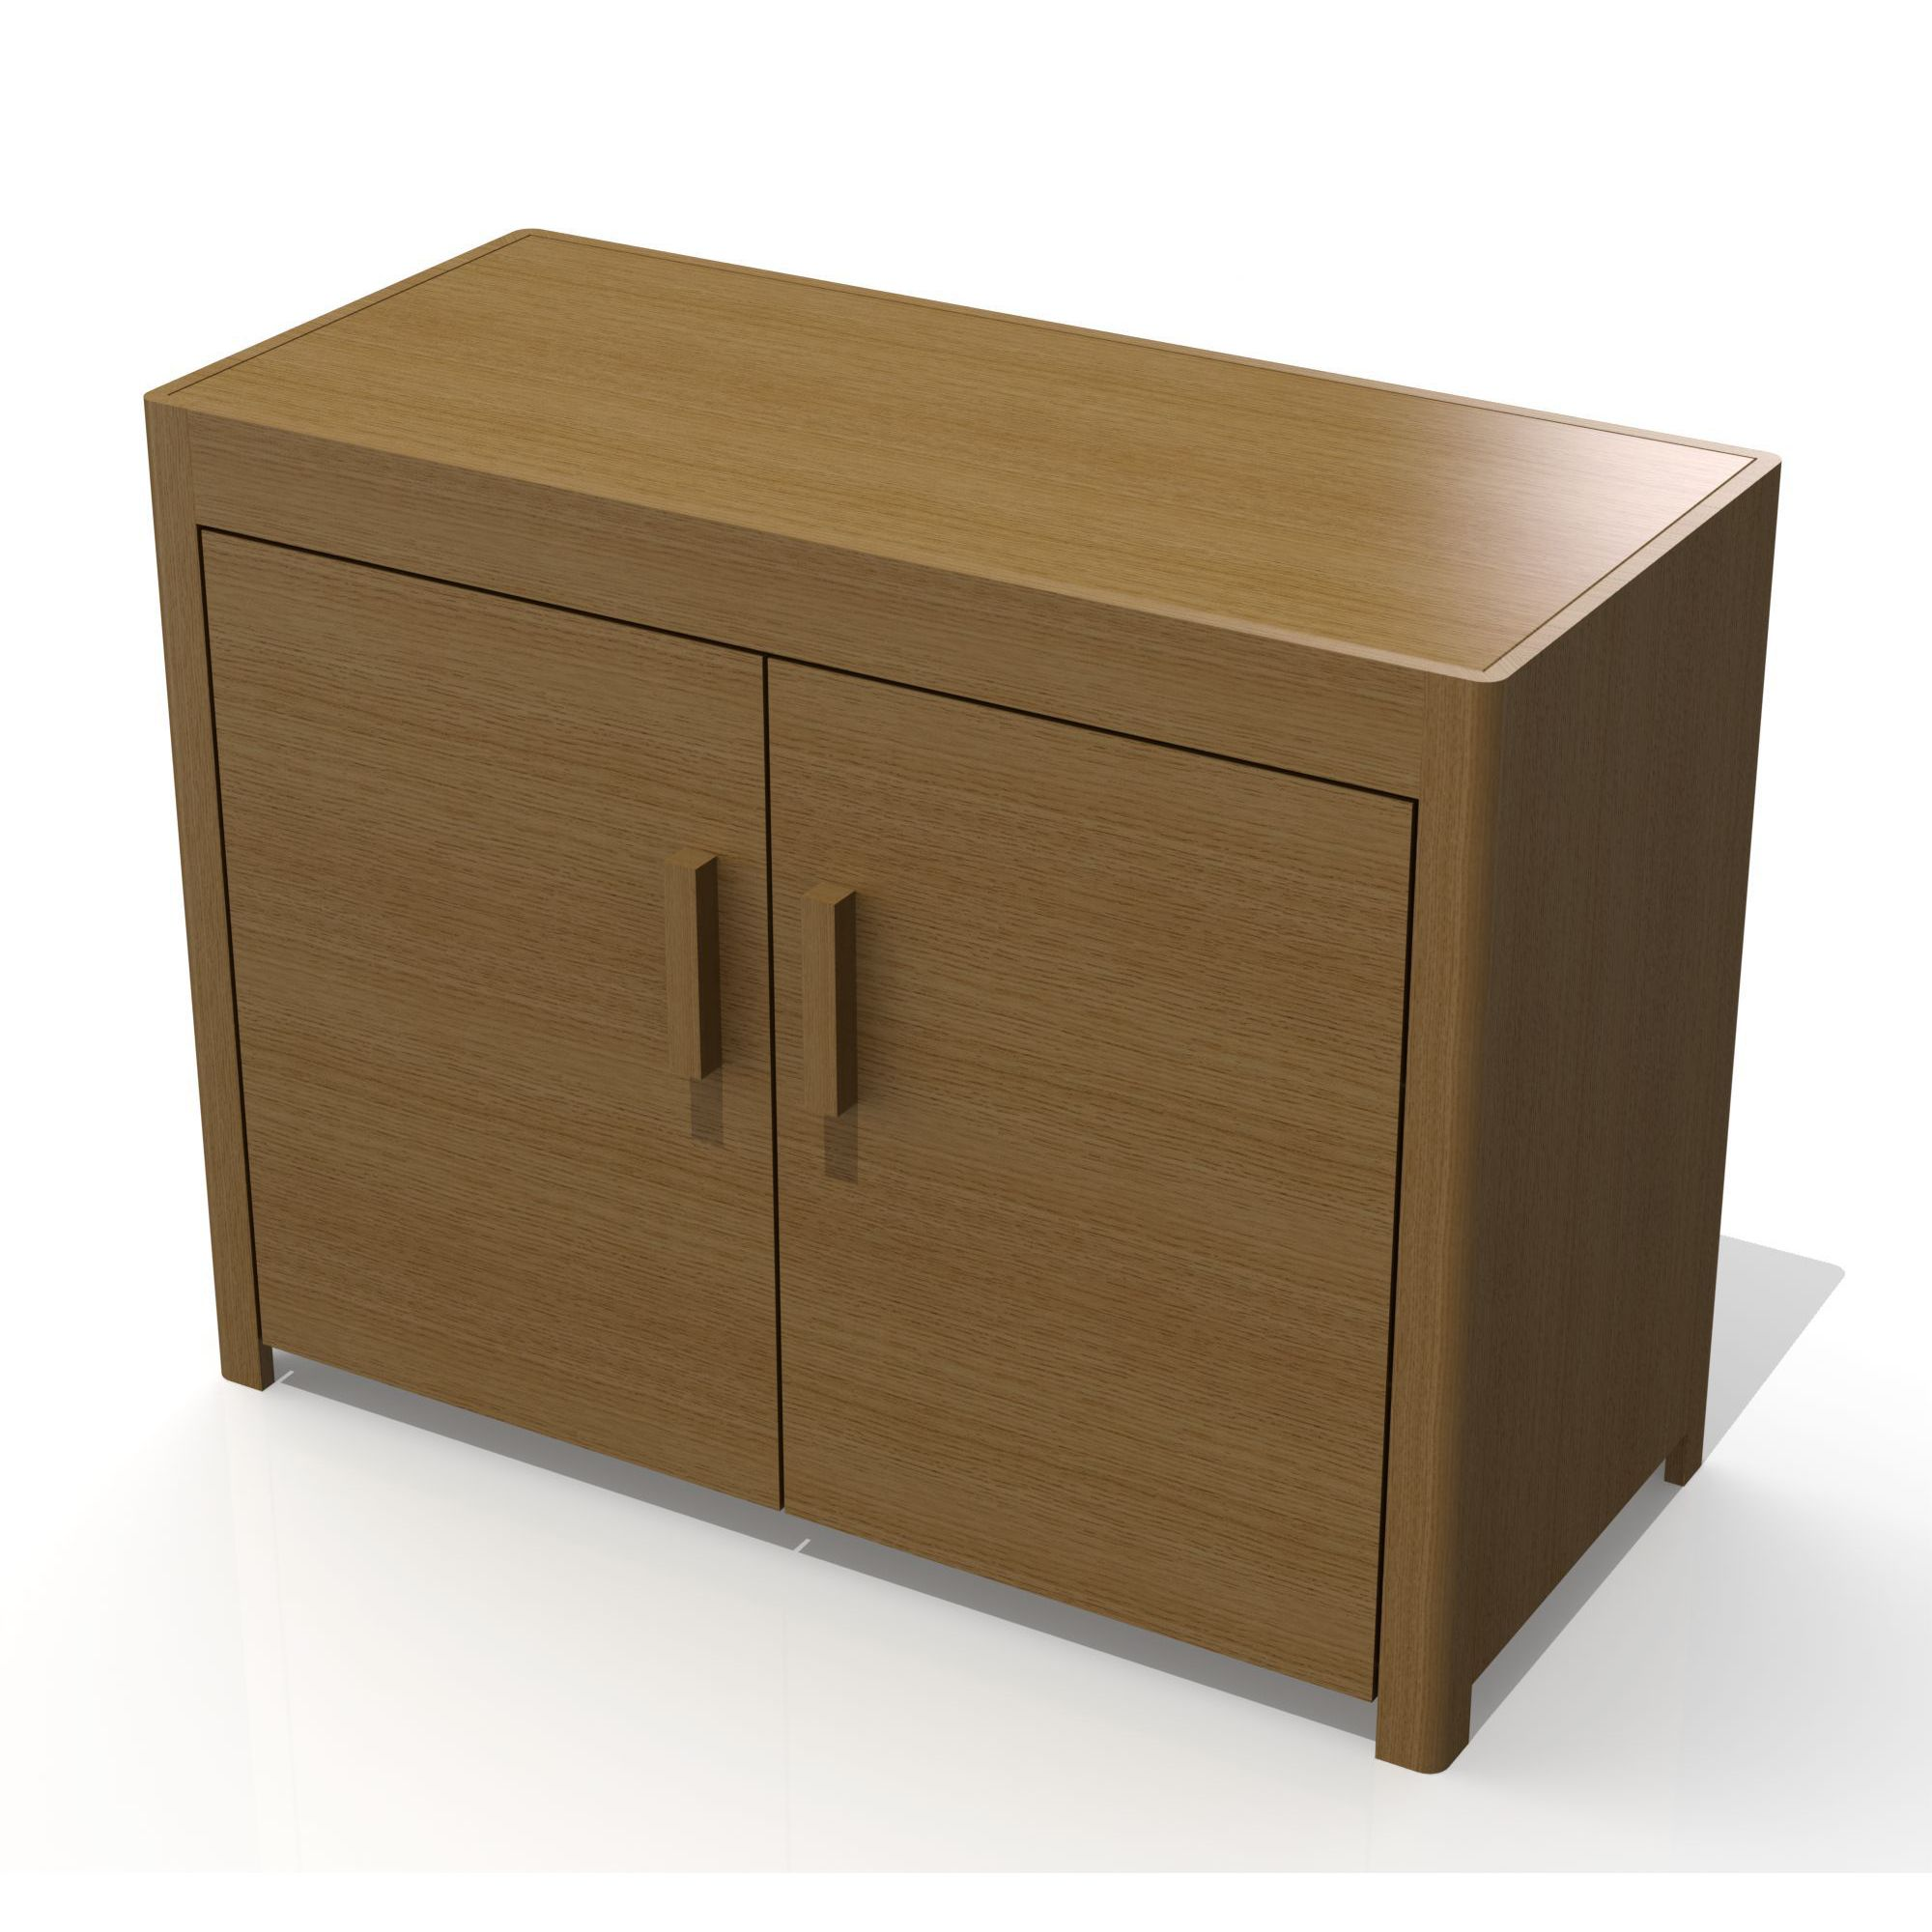 Ashcraft Banbury Sideboard - Beech at Tesco Direct